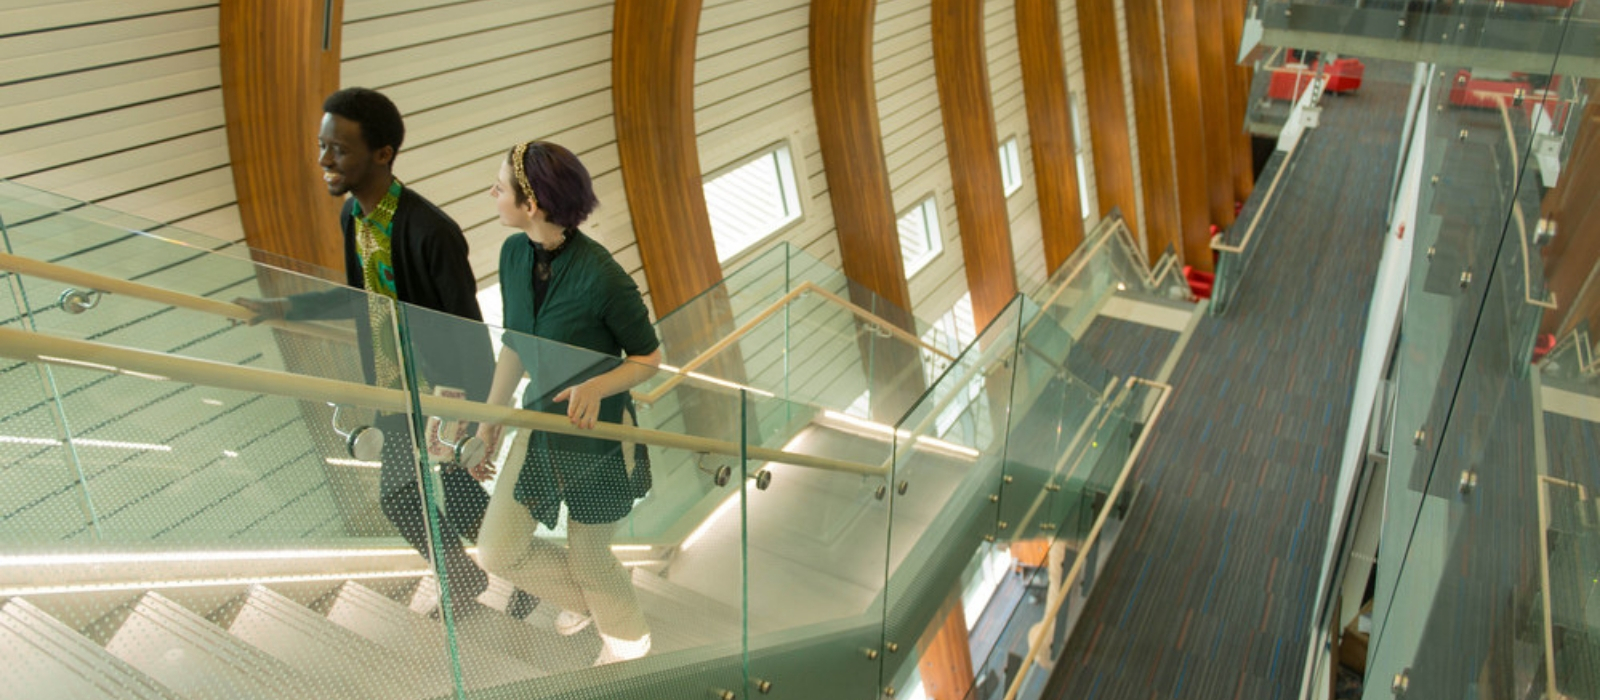 Two students walk up the stairs in a university building.